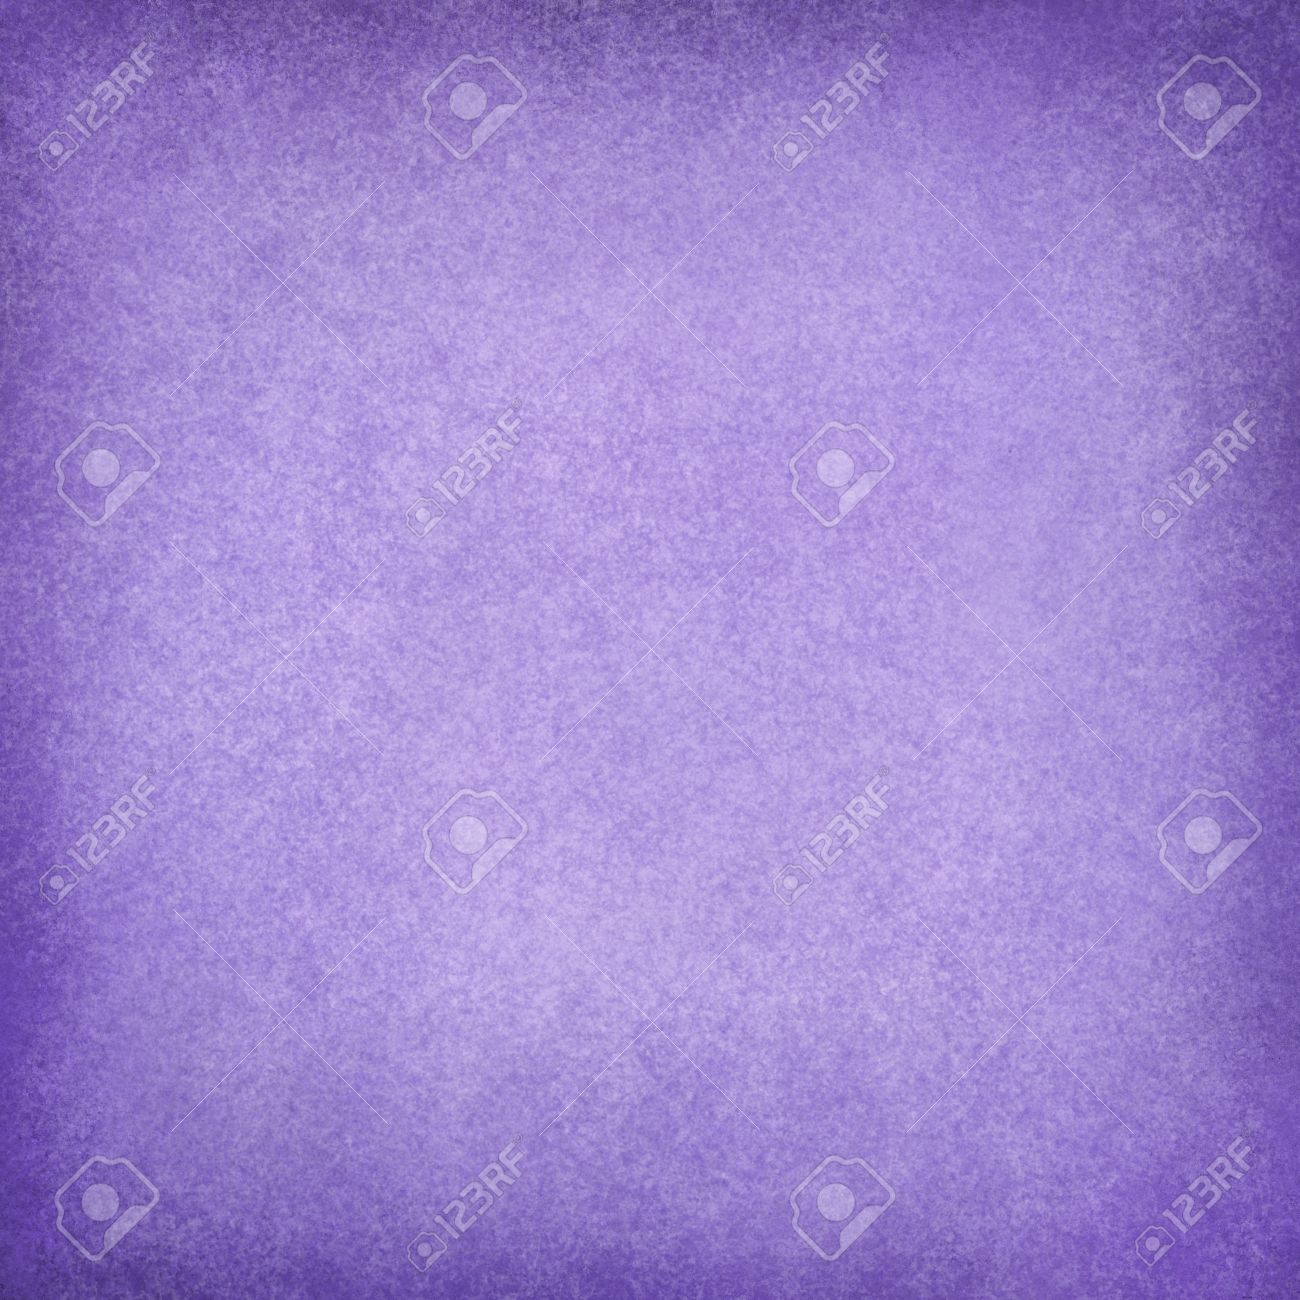 Light Purple Backgrounds